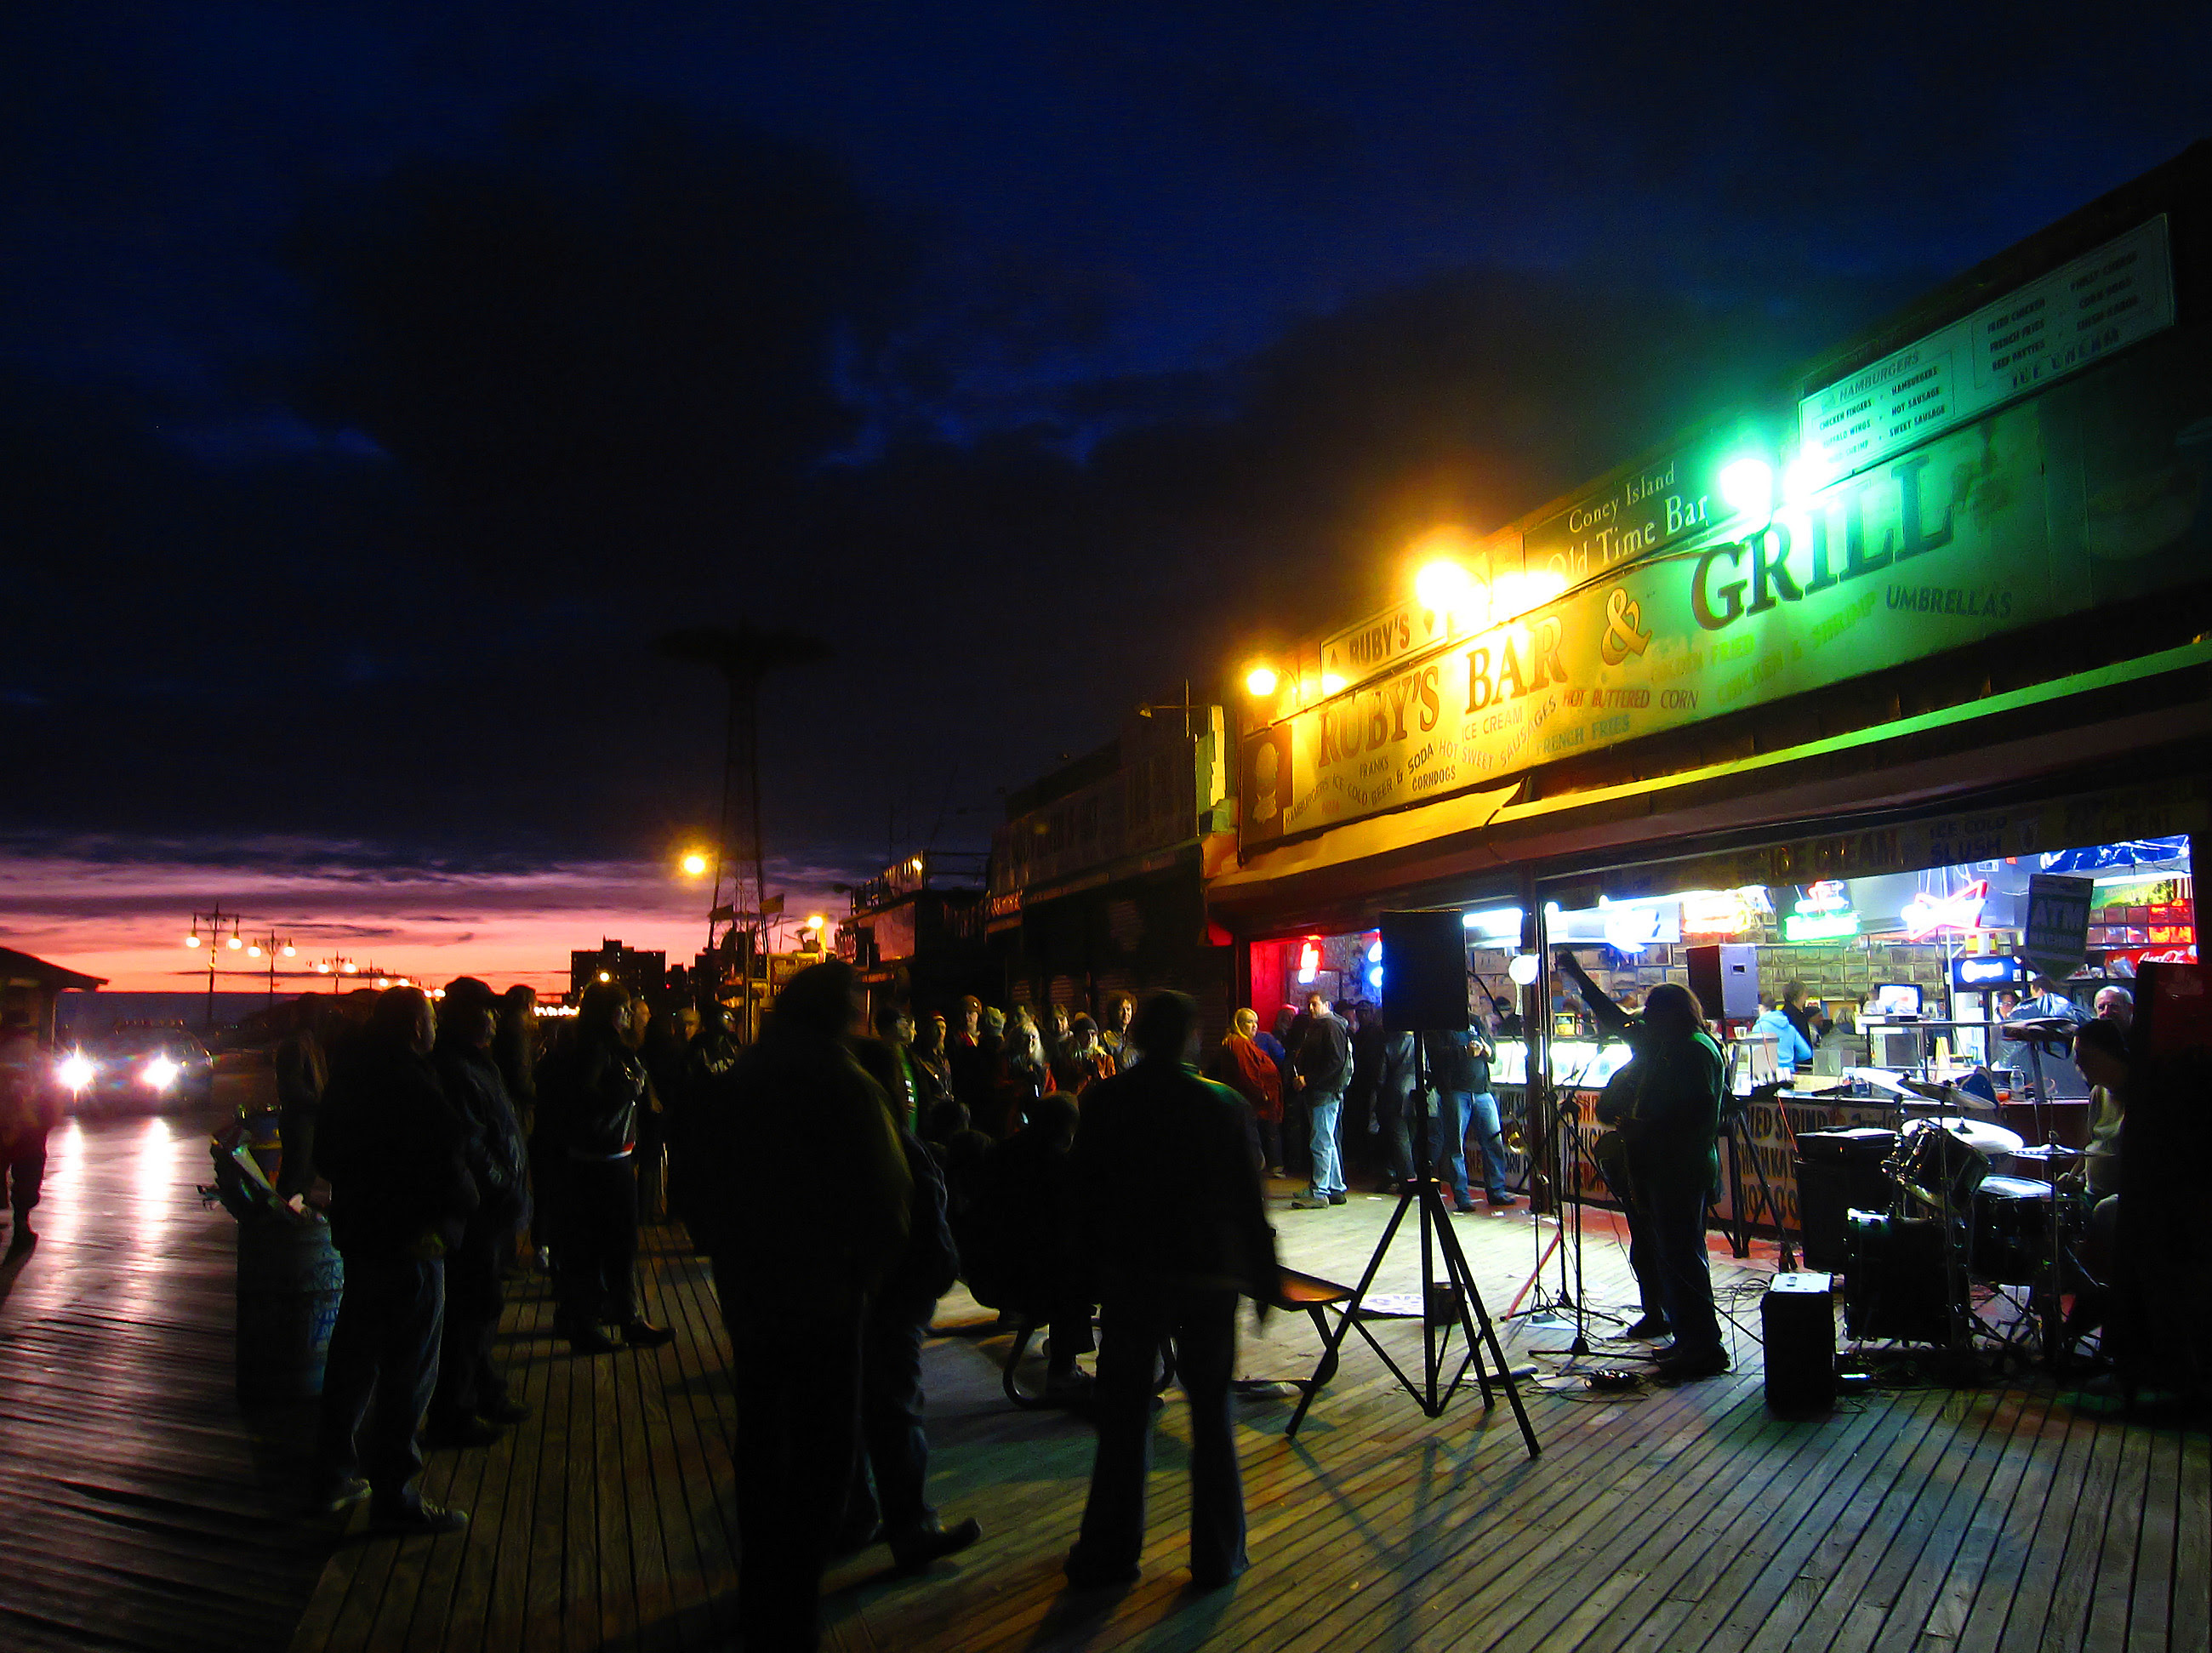 The sun setting over the boardwalk and Ruby's